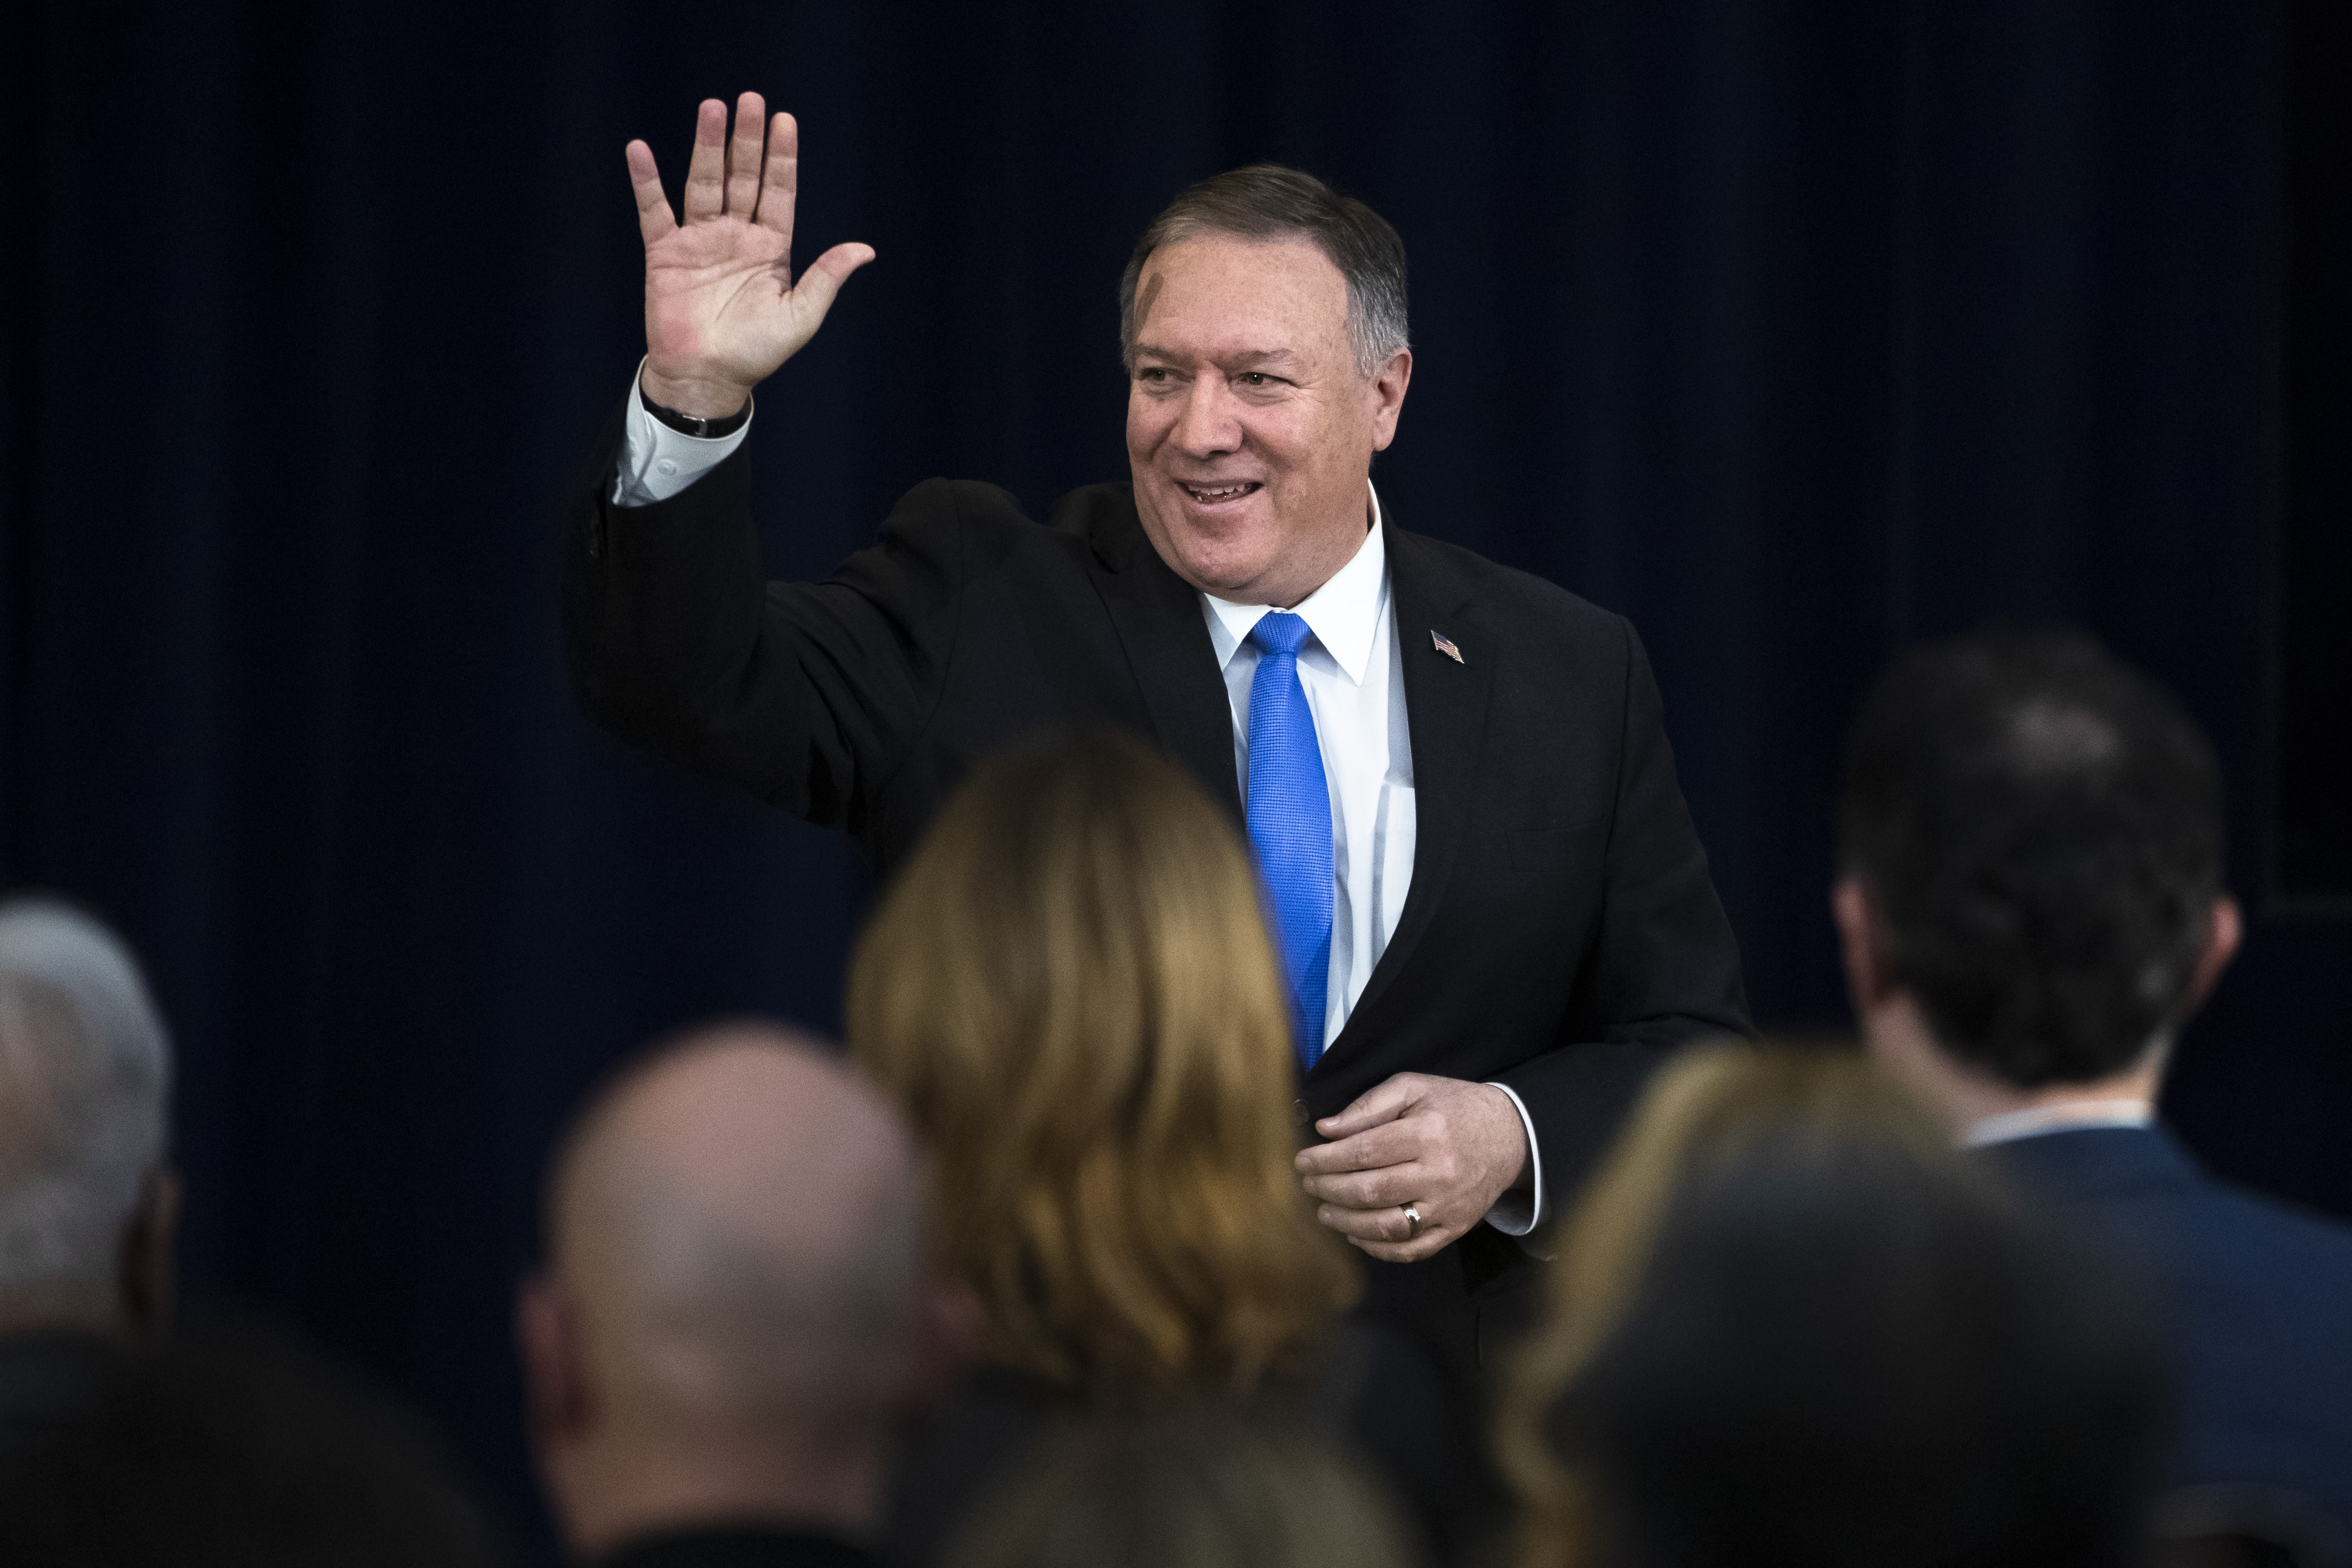 Baghdad embassy attack prompts Pompeo to delay Ukraine visit